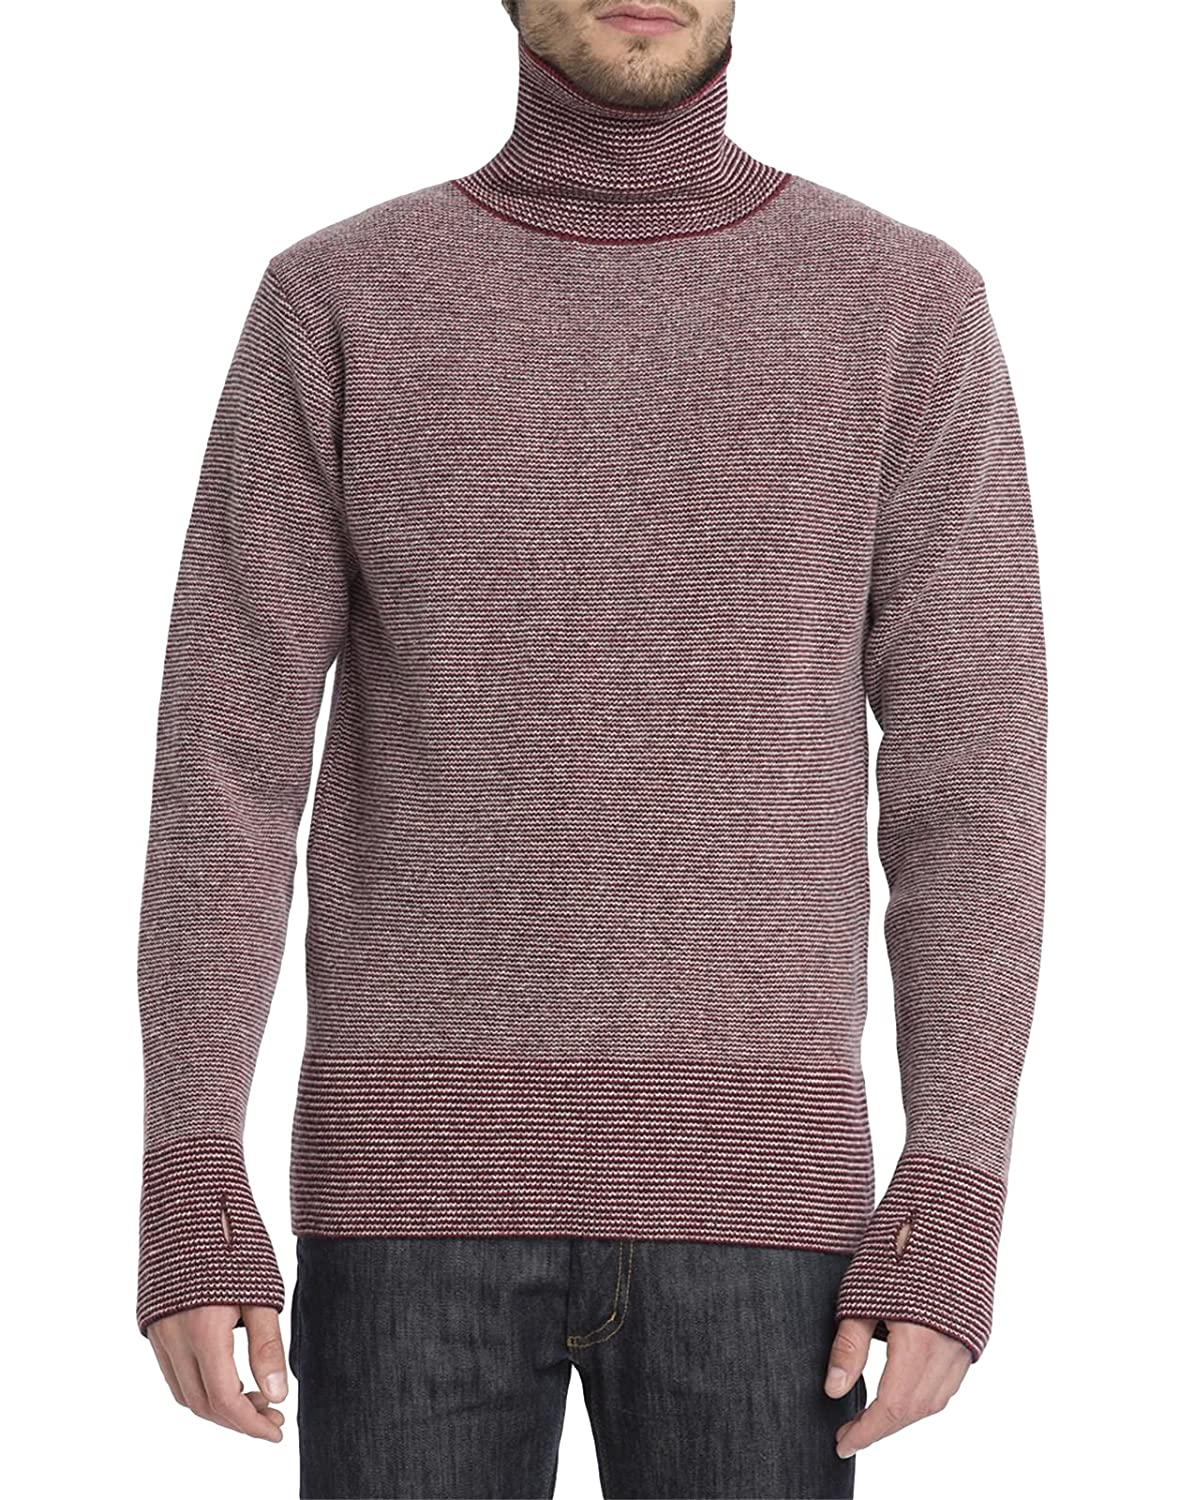 OLIVER SPENCER - Rollneck Sweaters - Men - Red Ripped Stitch Crew Fine Stripe High Collar Sweater for men - M